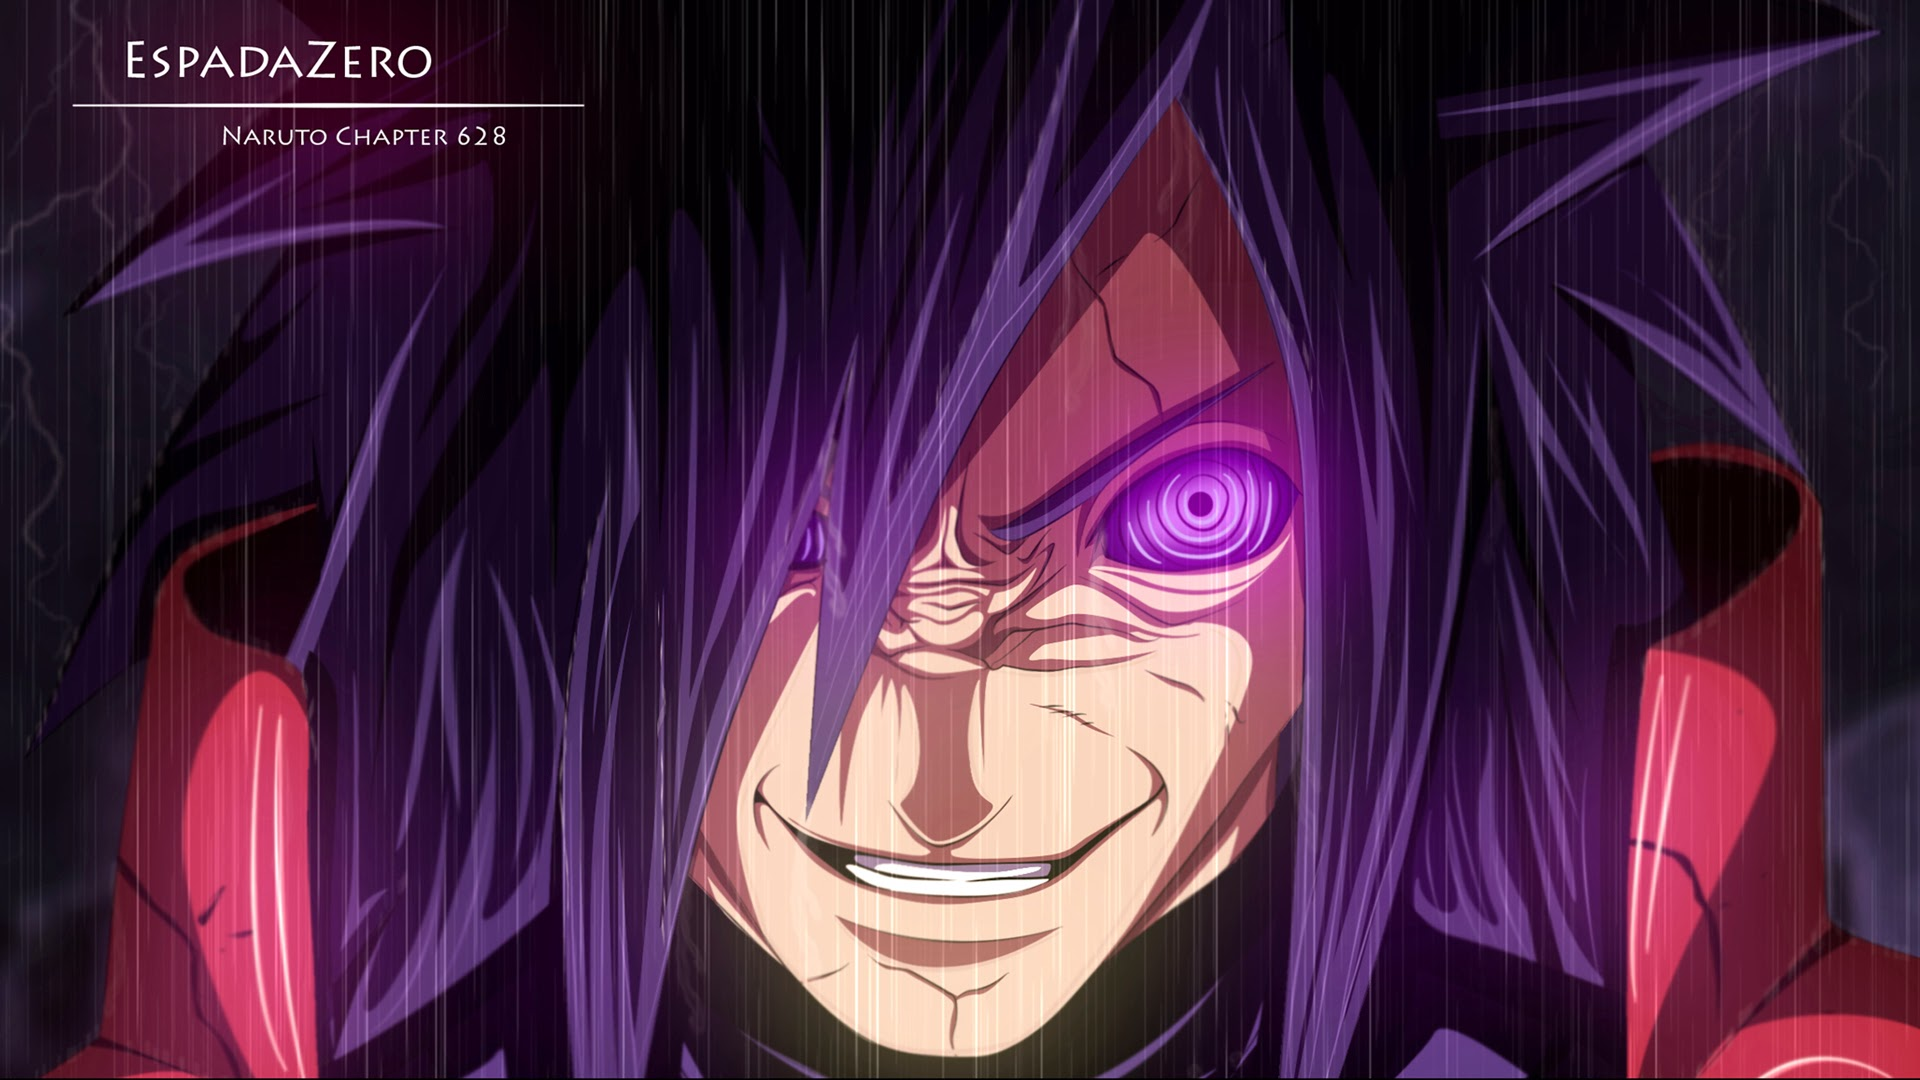 madara uchiha rinnegan eyes hd wallpaper 1920x1080 76 1920x1080